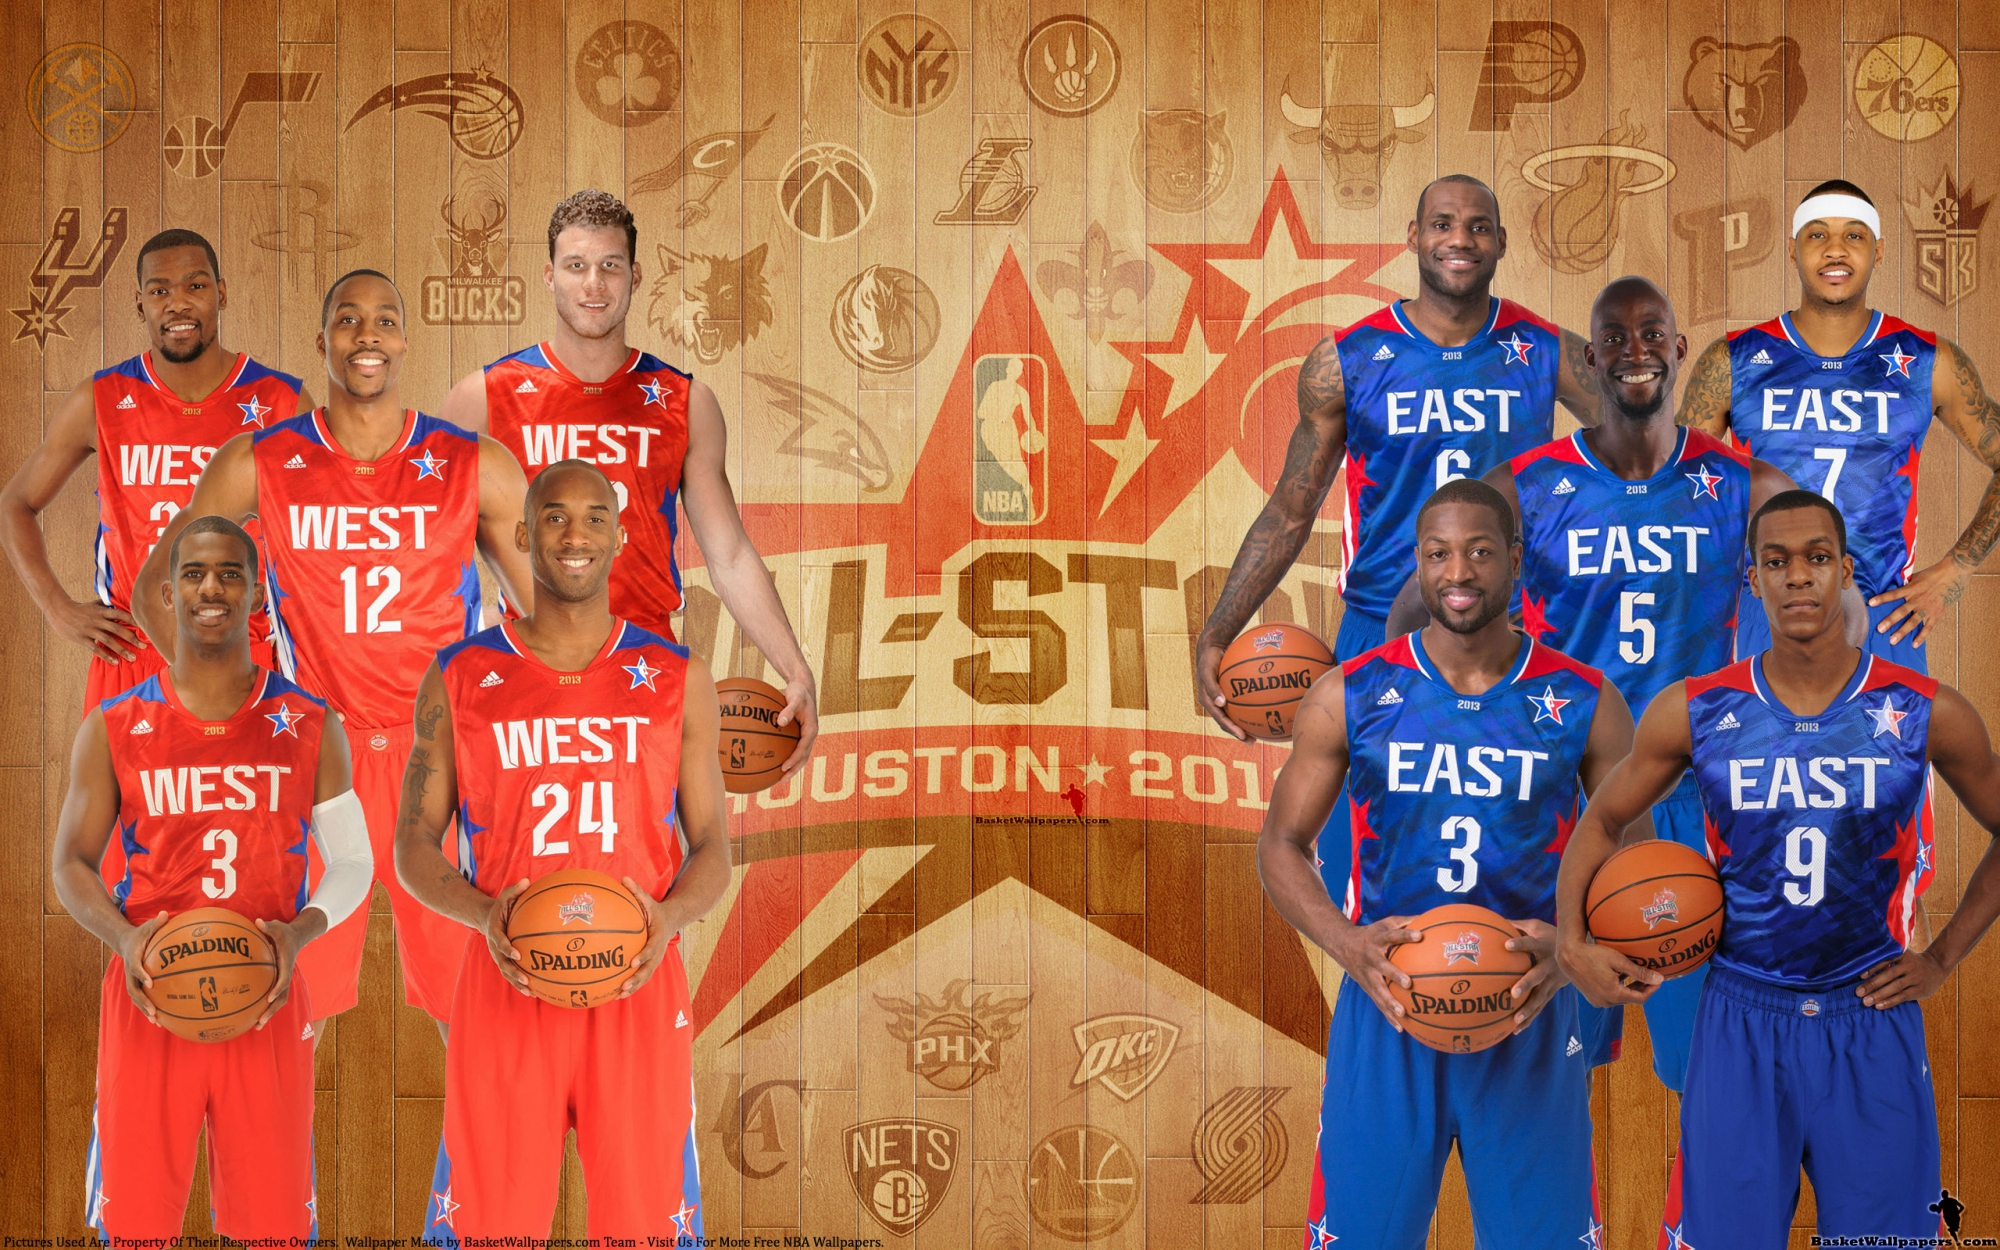 West wins in 2013 All-Star Game